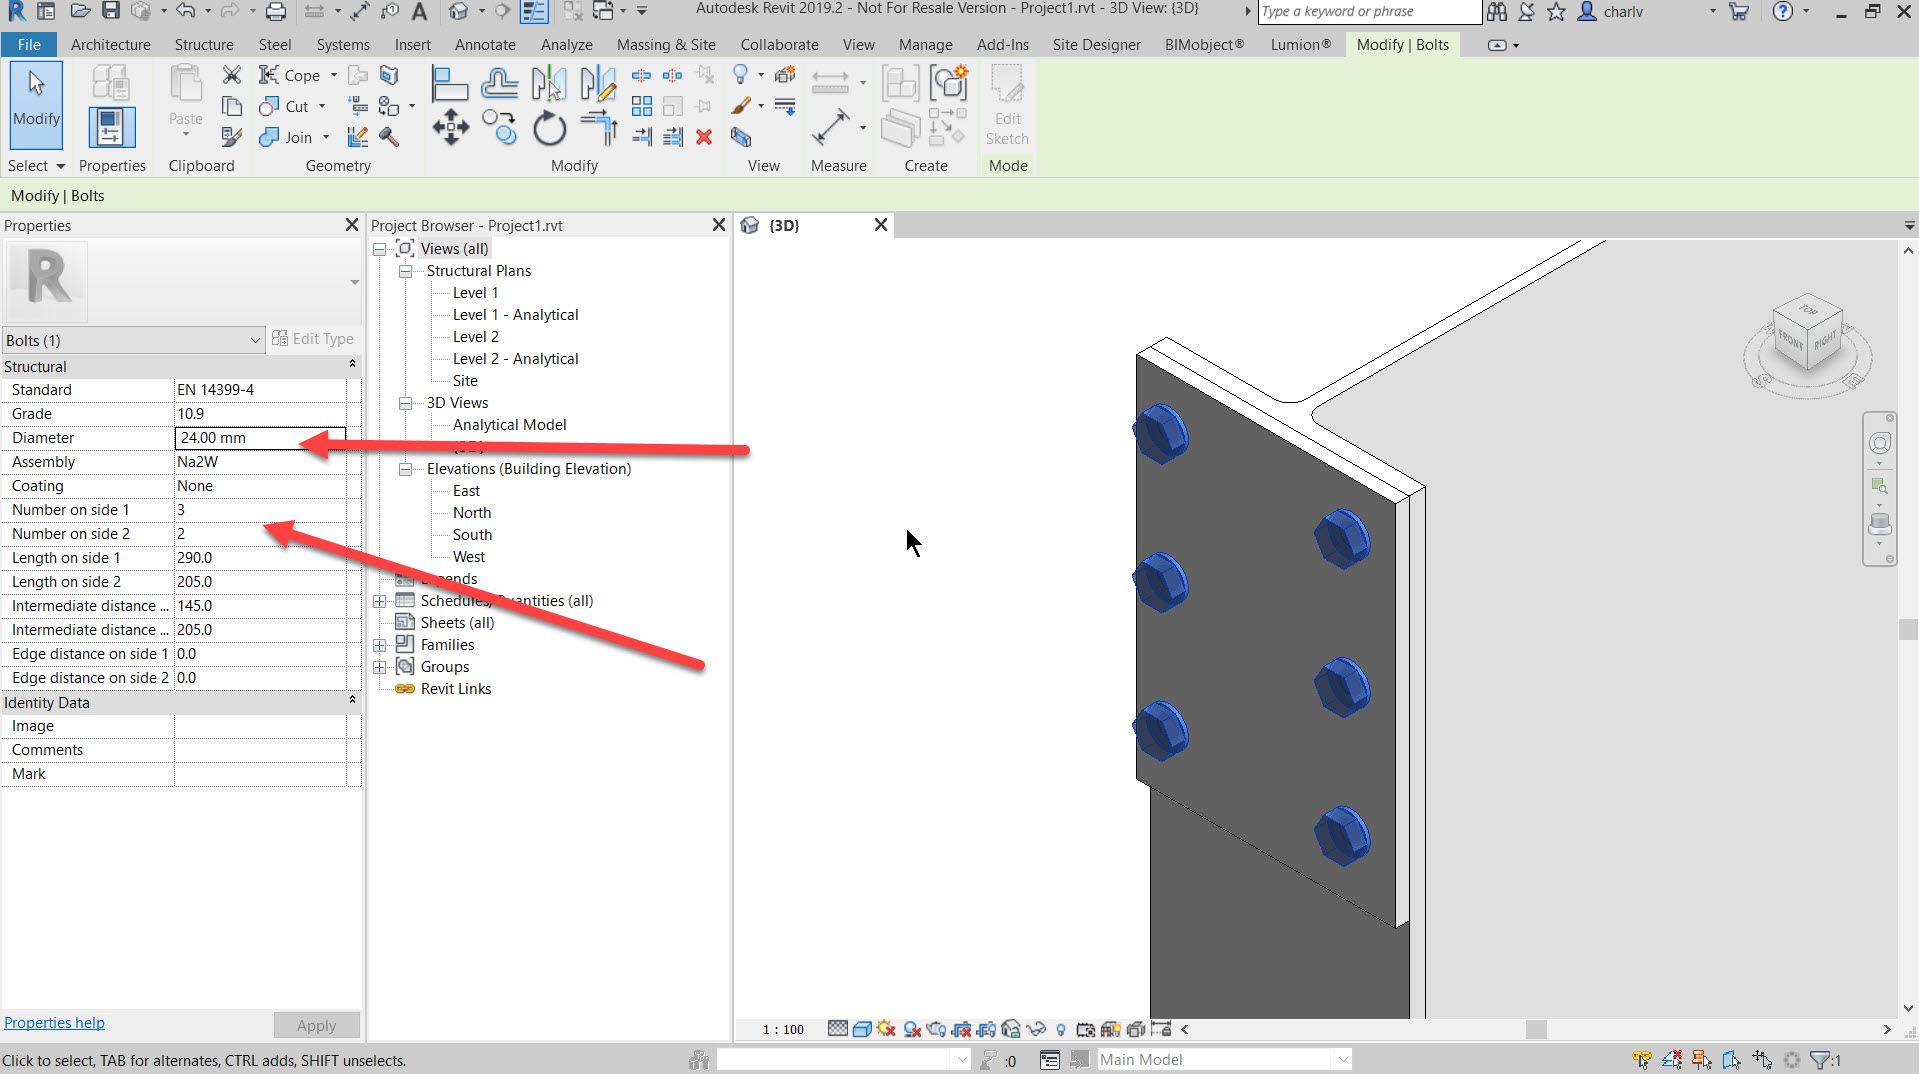 step6 How to add a set of bolts in Revit